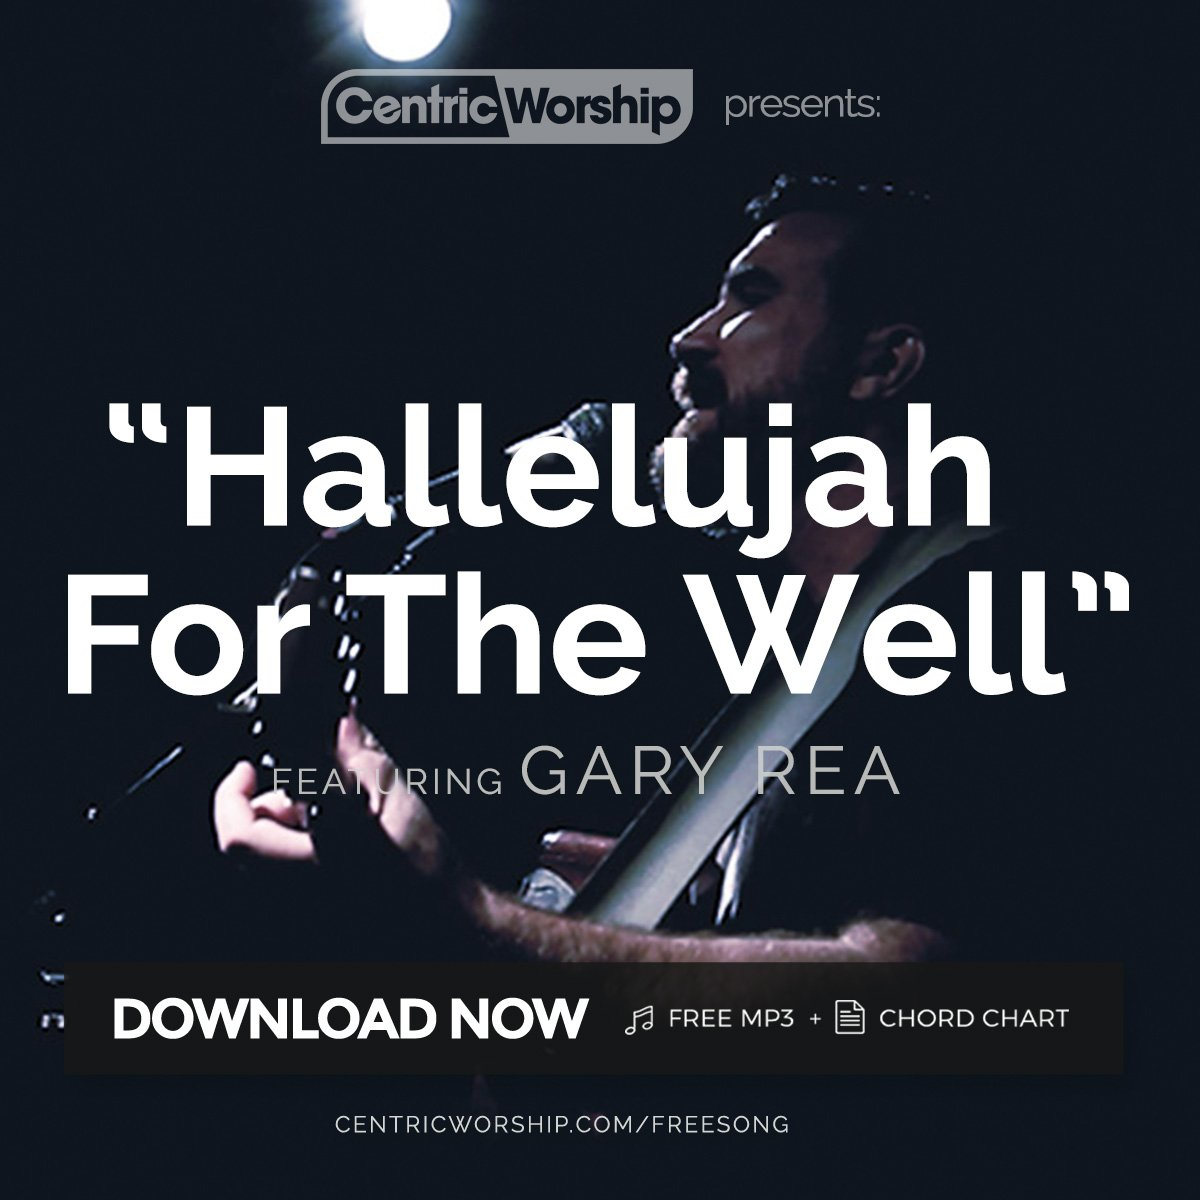 Ccm singlesstephen ccmsingles twitter hallelujah for the well from gary rea is our current free song grab the chord chart mp3 at httpcentricworshipfreesong picitter hexwebz Gallery